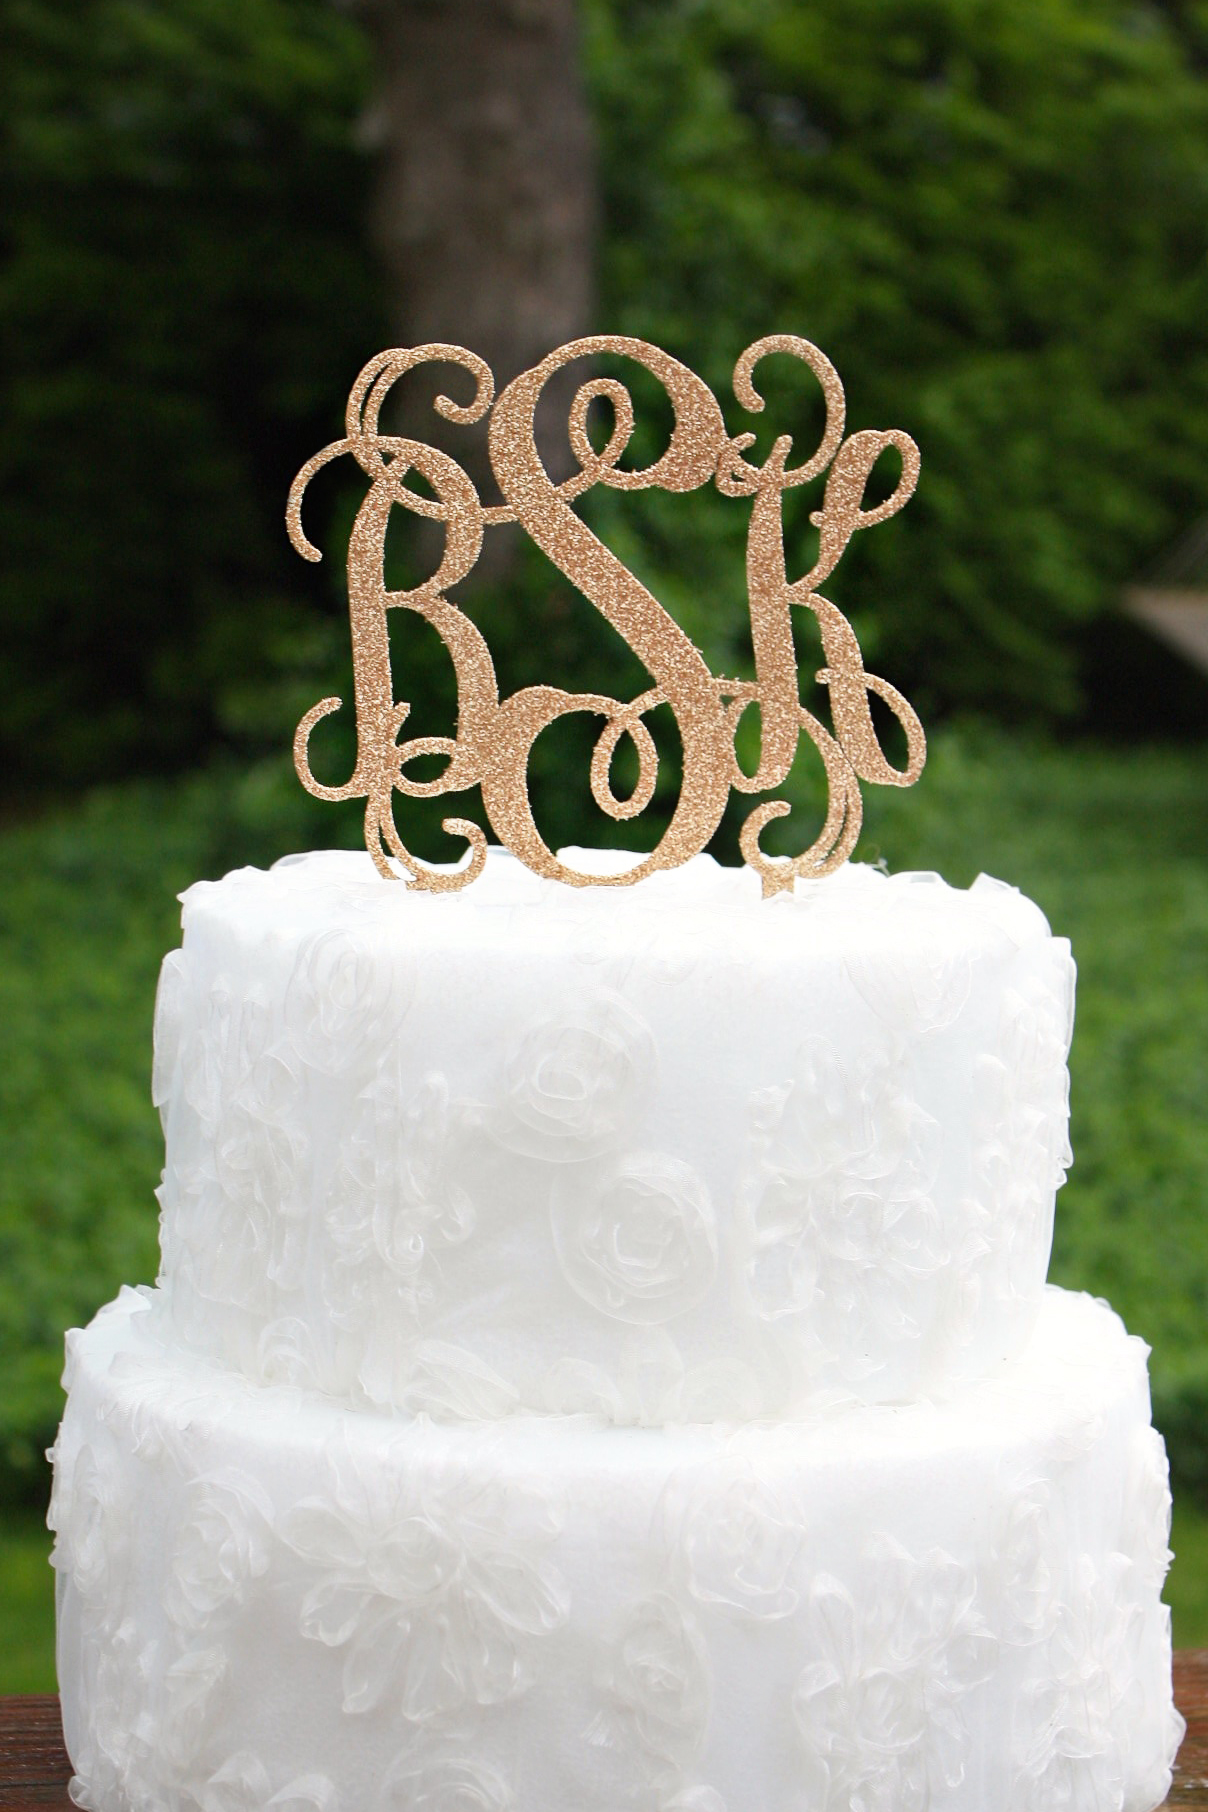 Custom Glittered Wedding Monogram Cake Topper From Inscribed